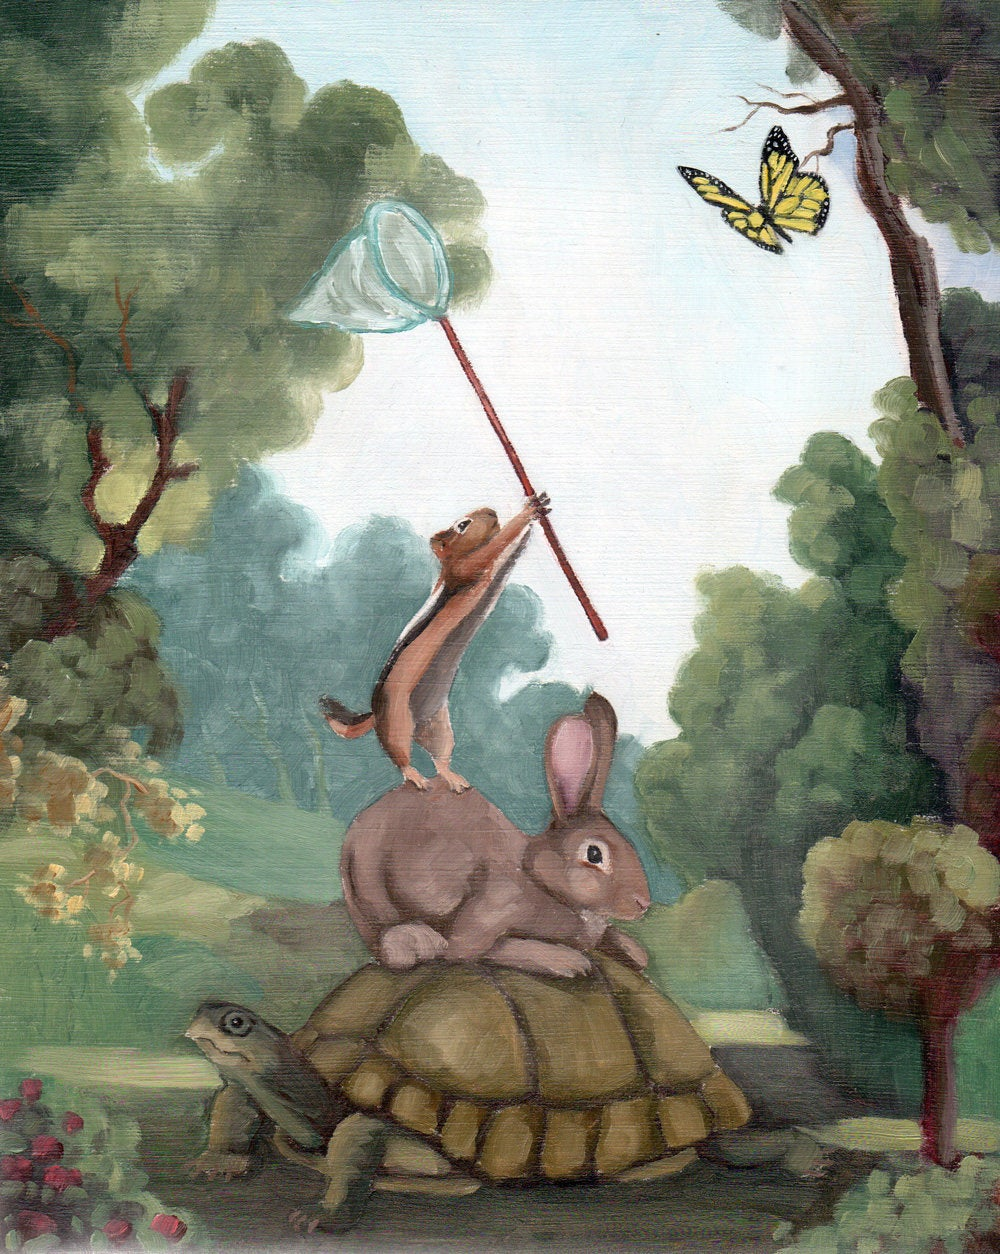 Tortoise, Rabbit, Chipmunk w/ Butterfly Net